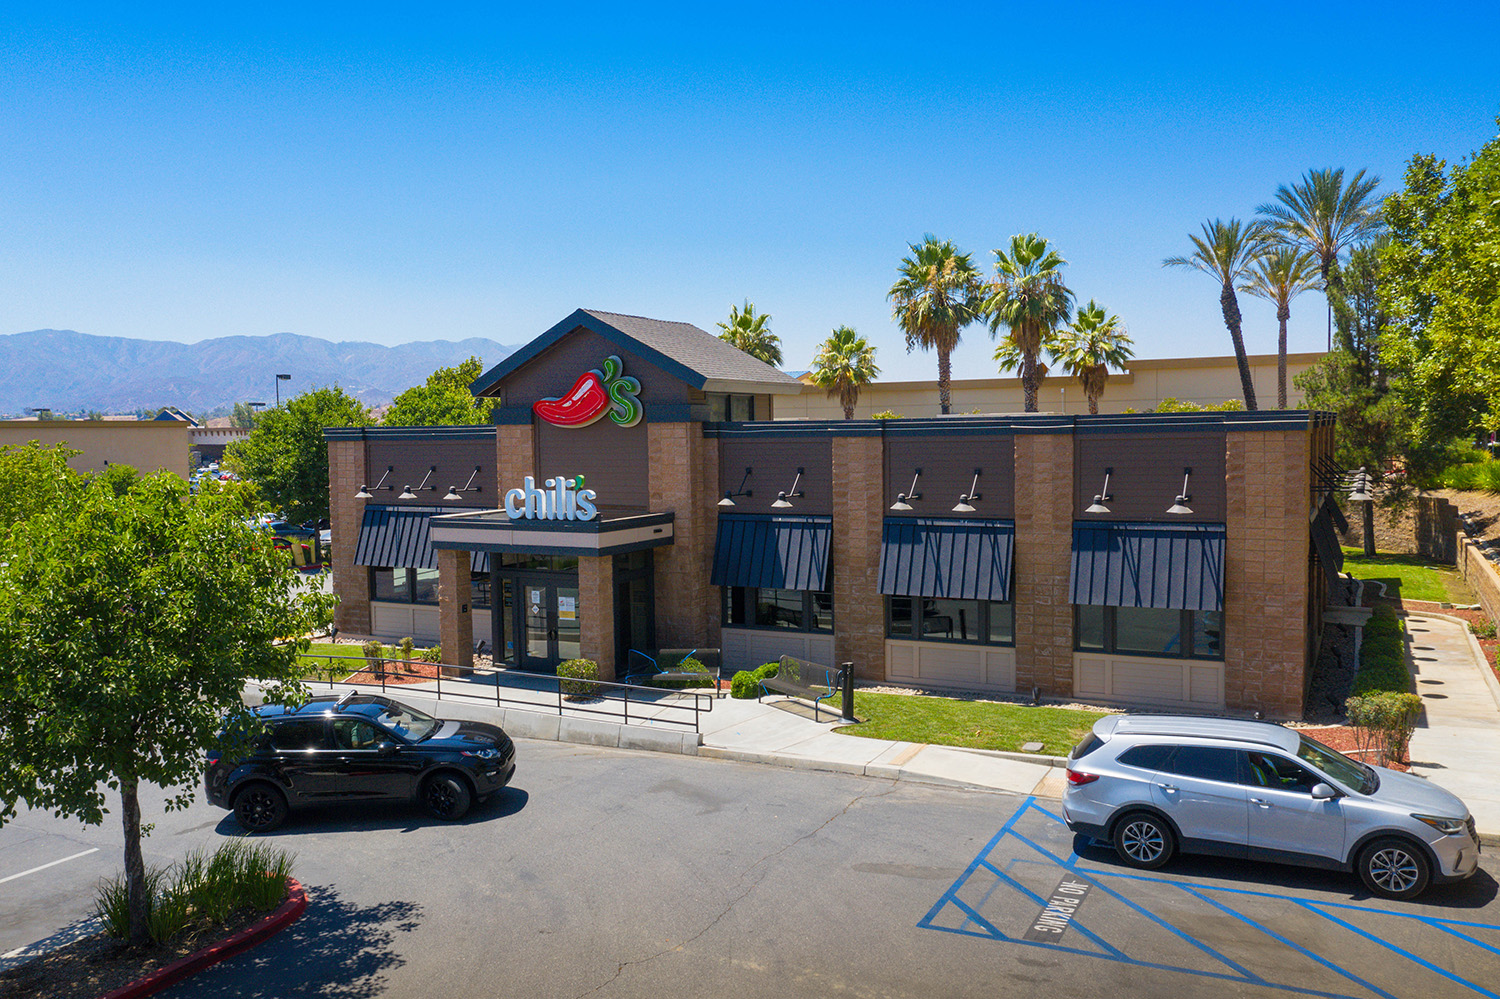 Hanley Investment Group Announces Rare 2020 Sit-Down Restaurant Sale, Chili's Grill & Bar at Lake Elsinore Marketplace for $2.6 Million